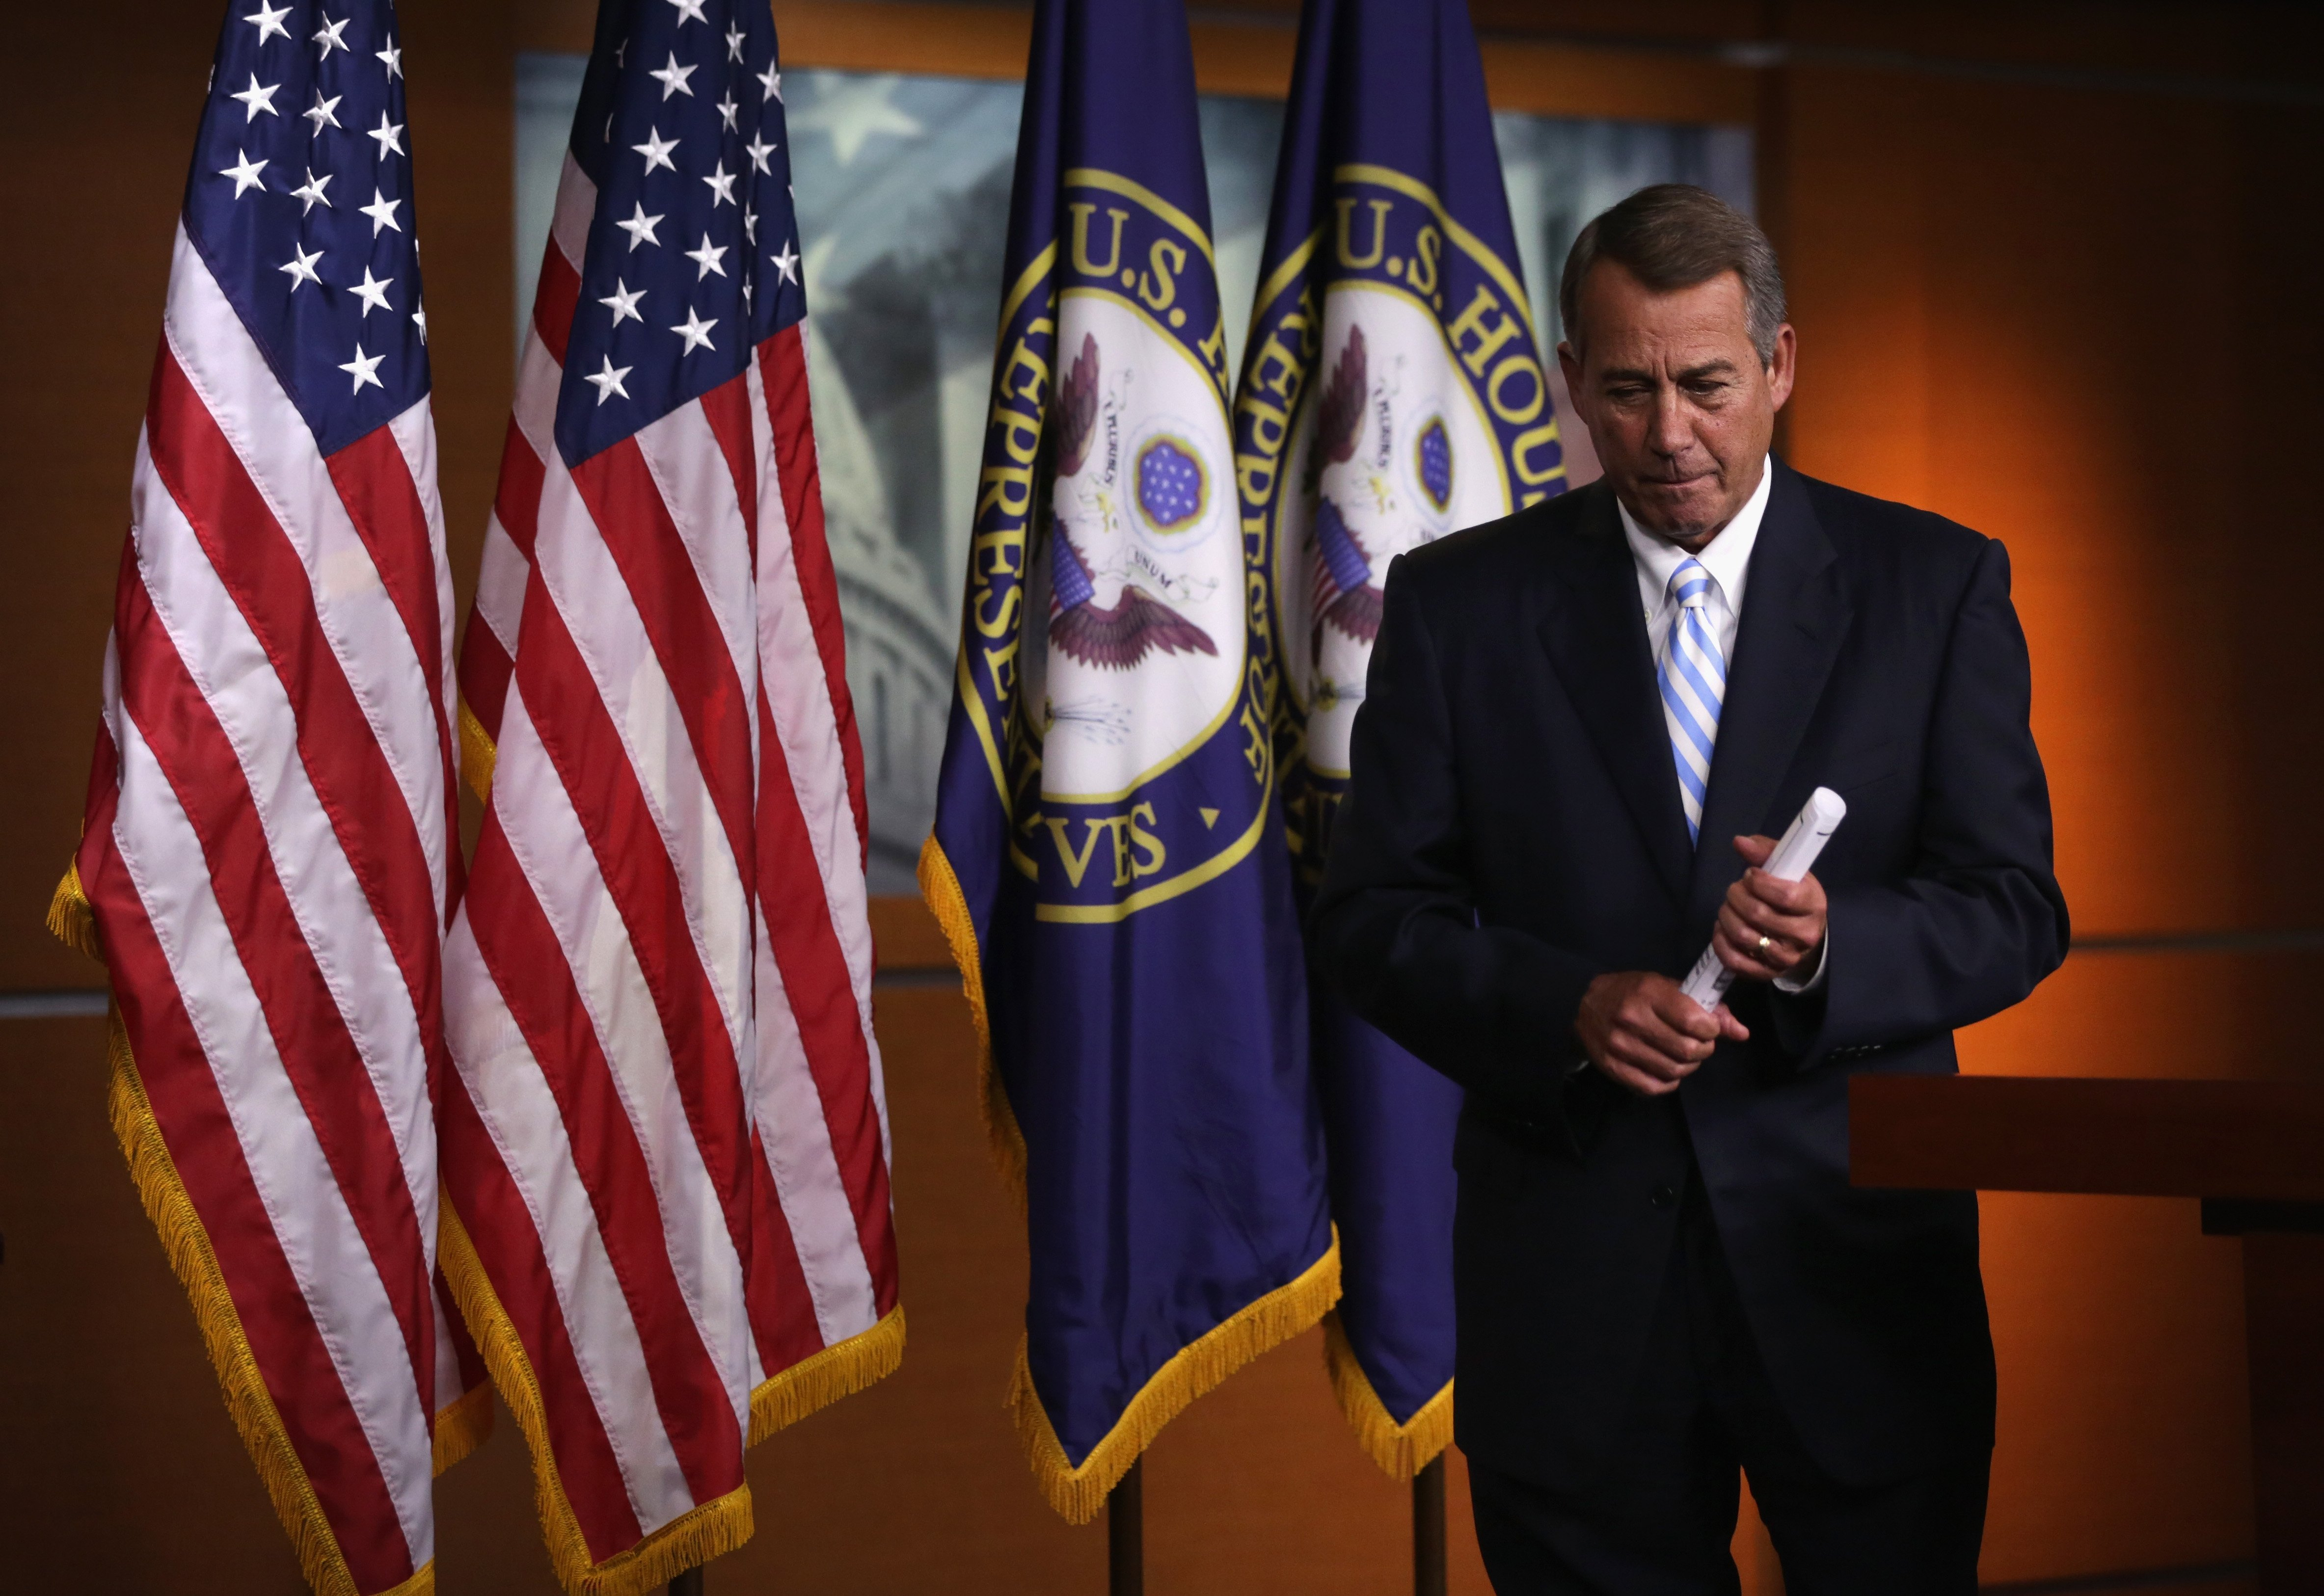 U.S. Speaker of the House Rep. John Boehner leaves after a press briefing July 31, 2014 on Capitol Hill in Washington.